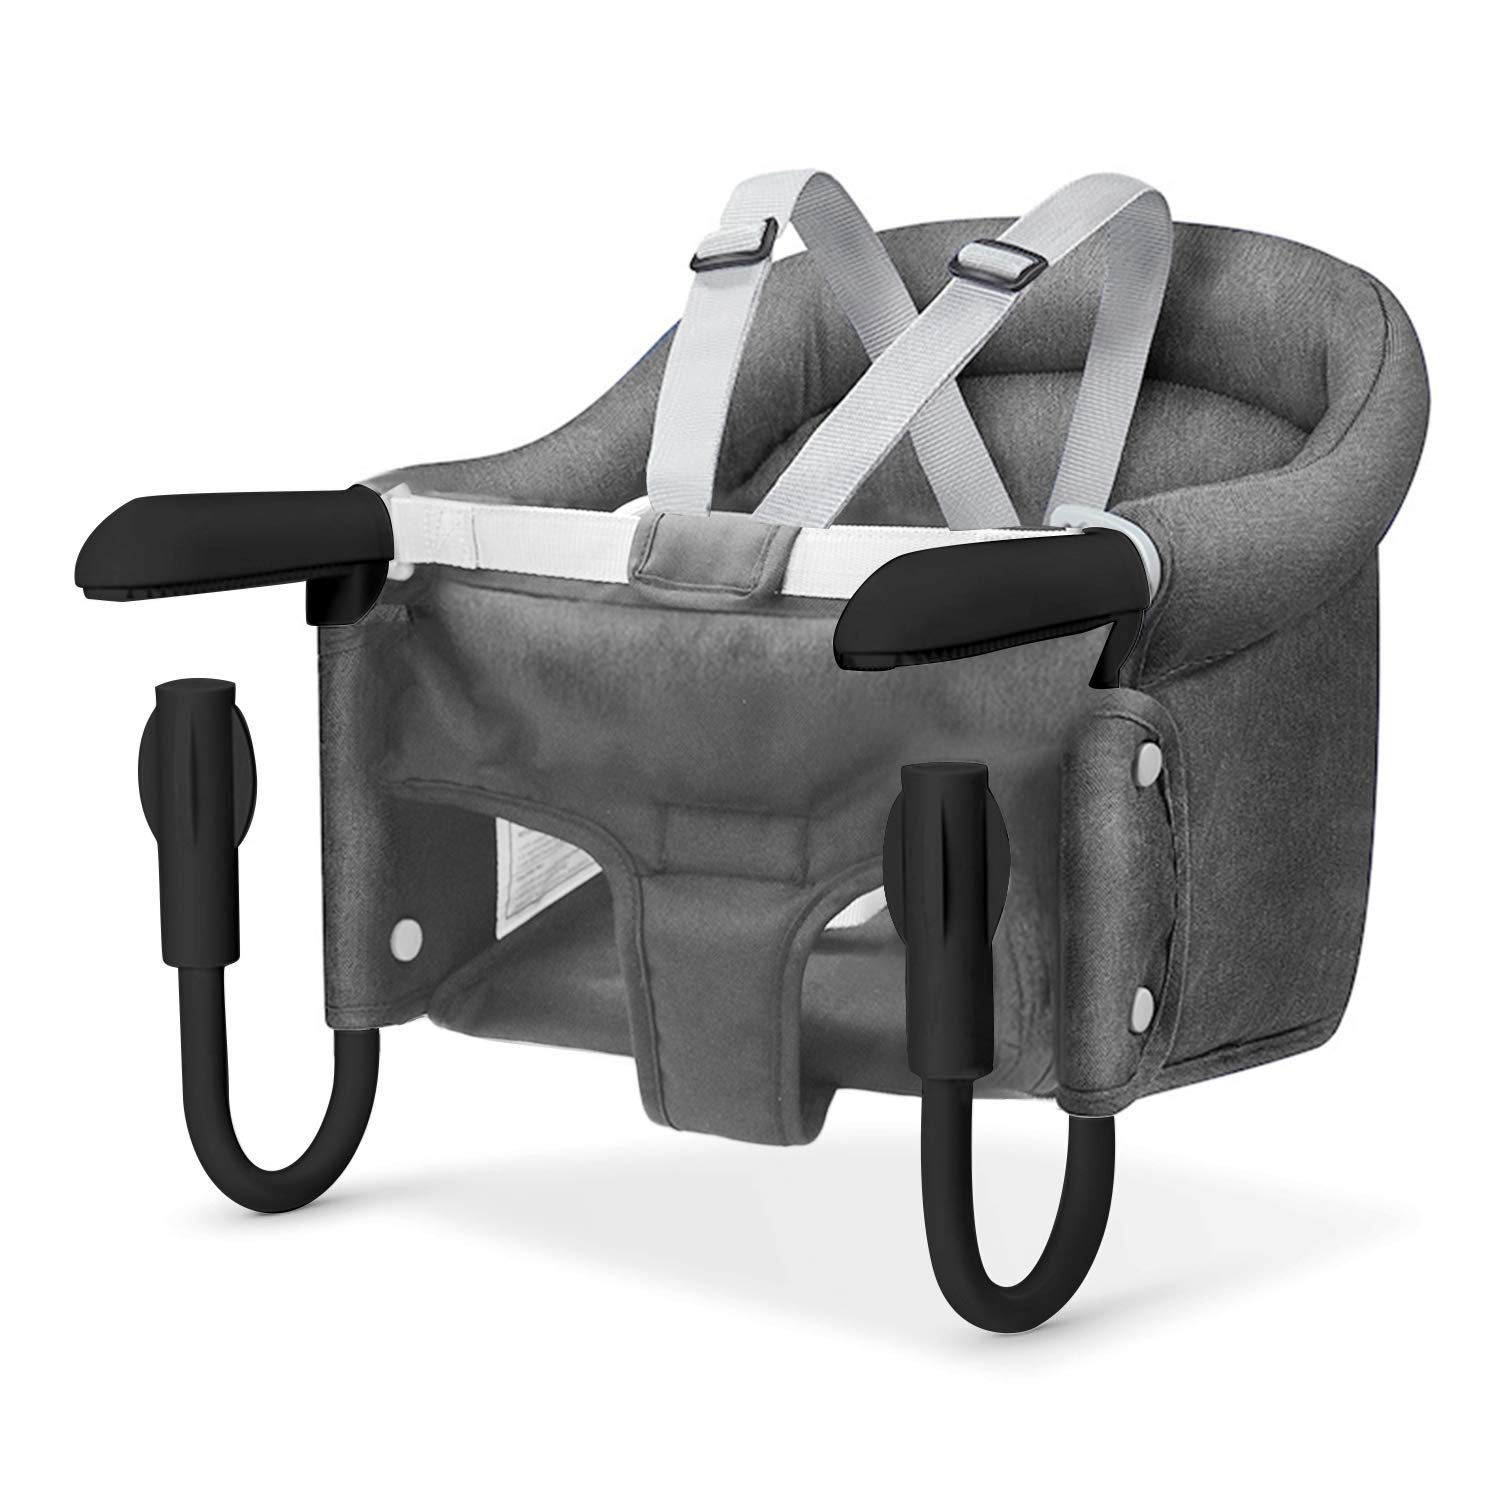 Hook On Chair, Safe and High Load Design, Fold-Flat Storage and Tight Fixing Clip on Table High Chair, Machine-Washable and Avoid Cracking Fabric, Removable Seat Cushion, Fast Table Chair (Grey) by TCBunny